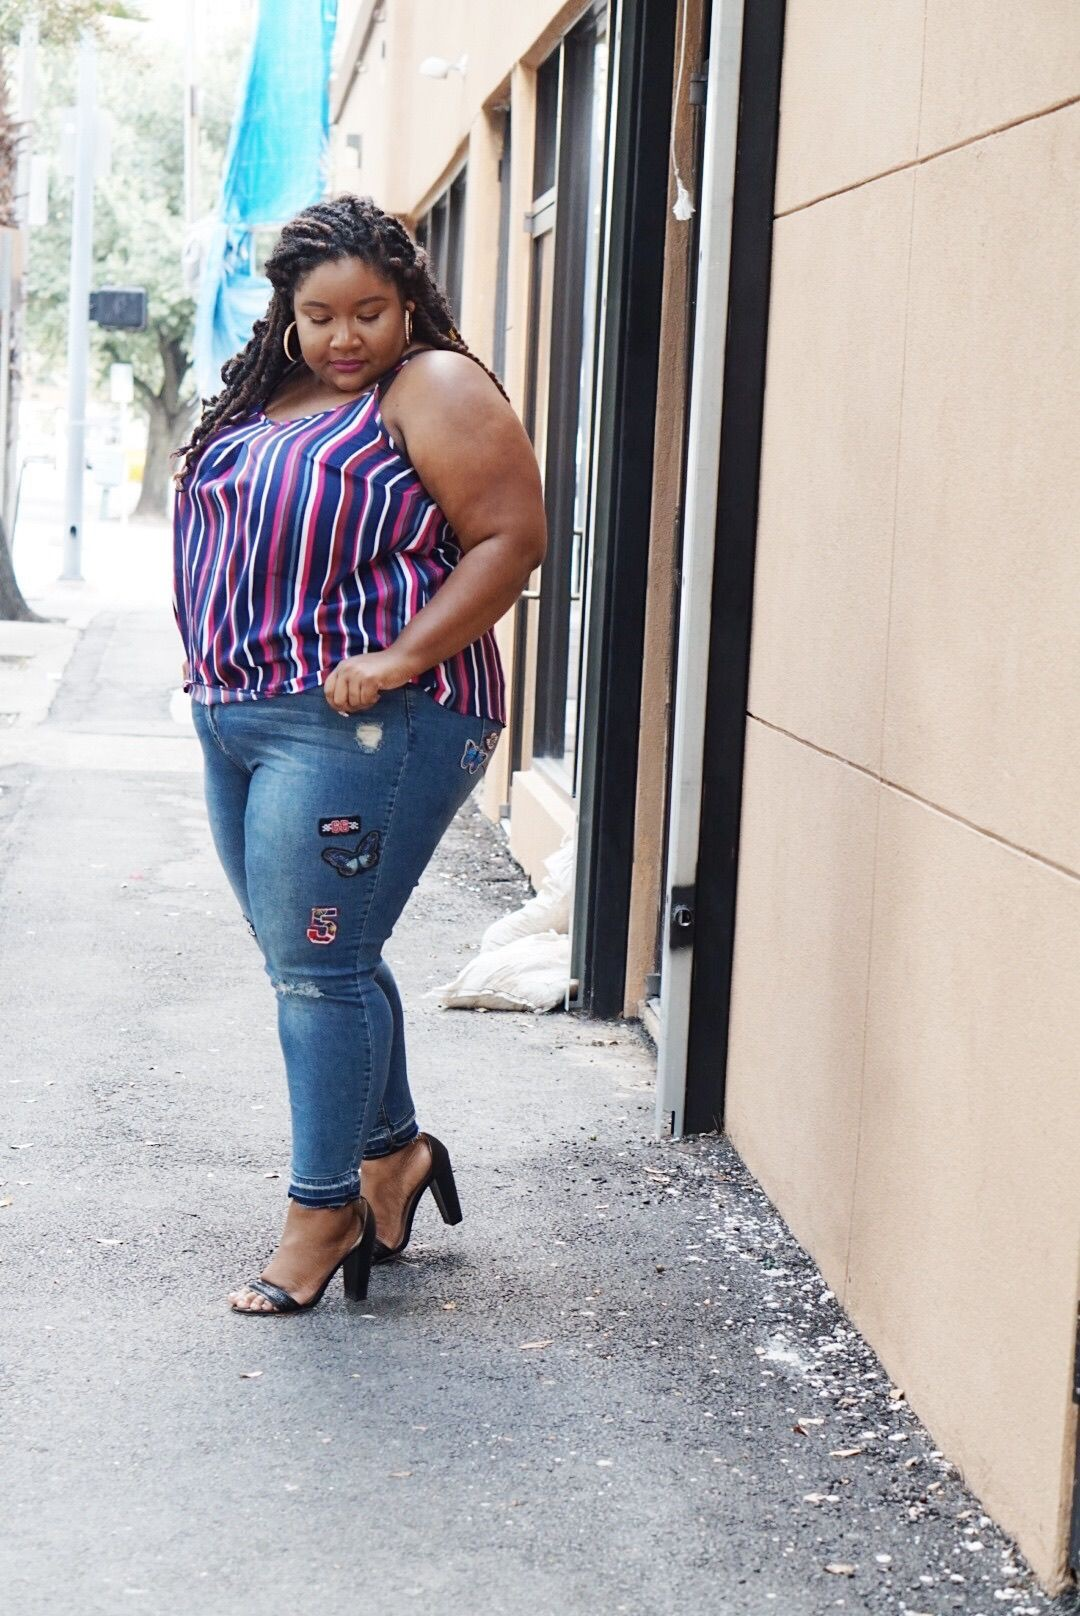 Women with big arms plus size clothing, plus size model